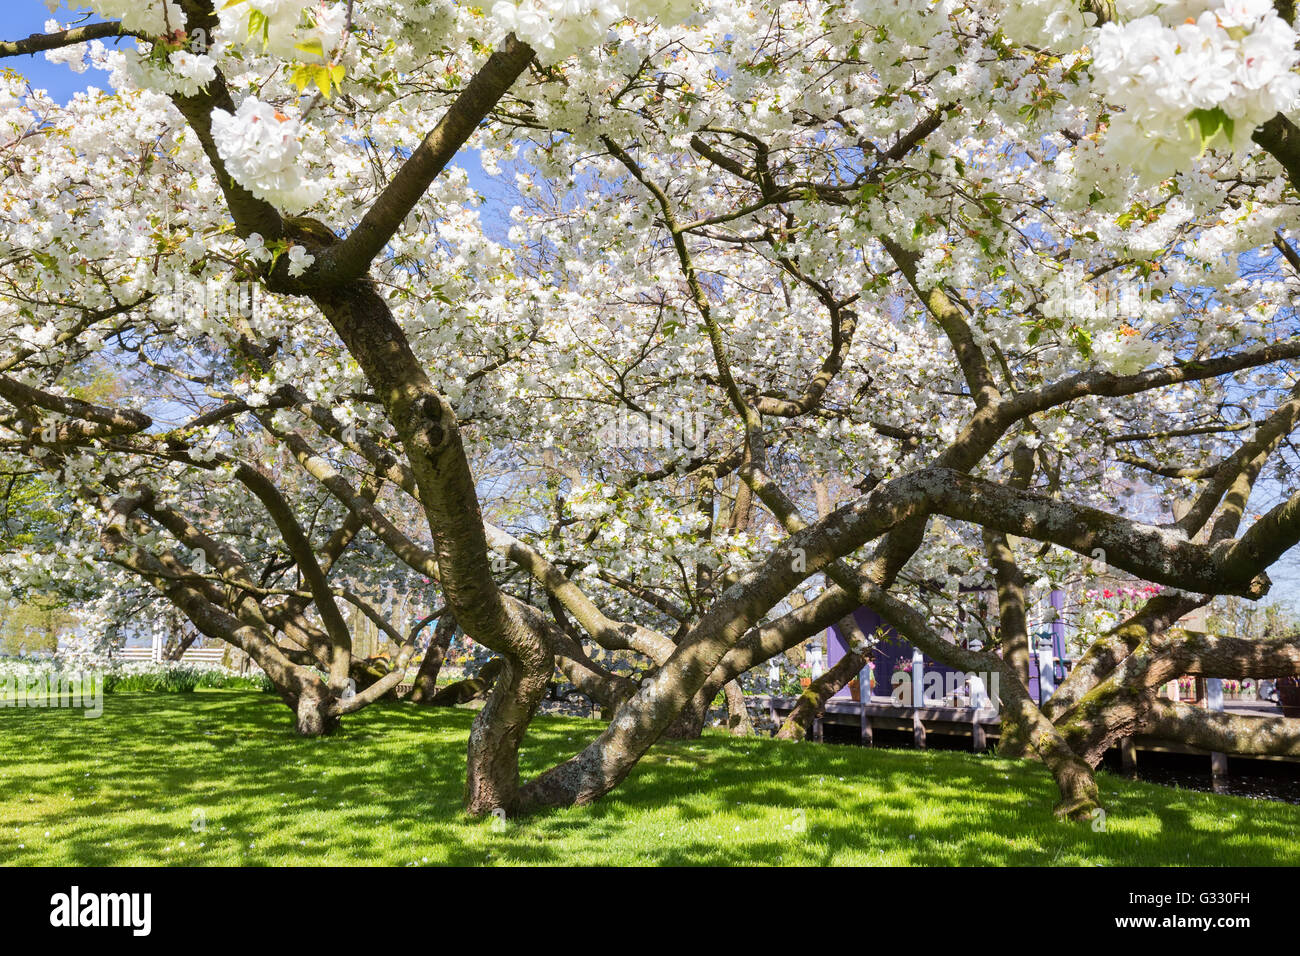 Blossoming Trees With White Flowers In Spring Time Stock Photo